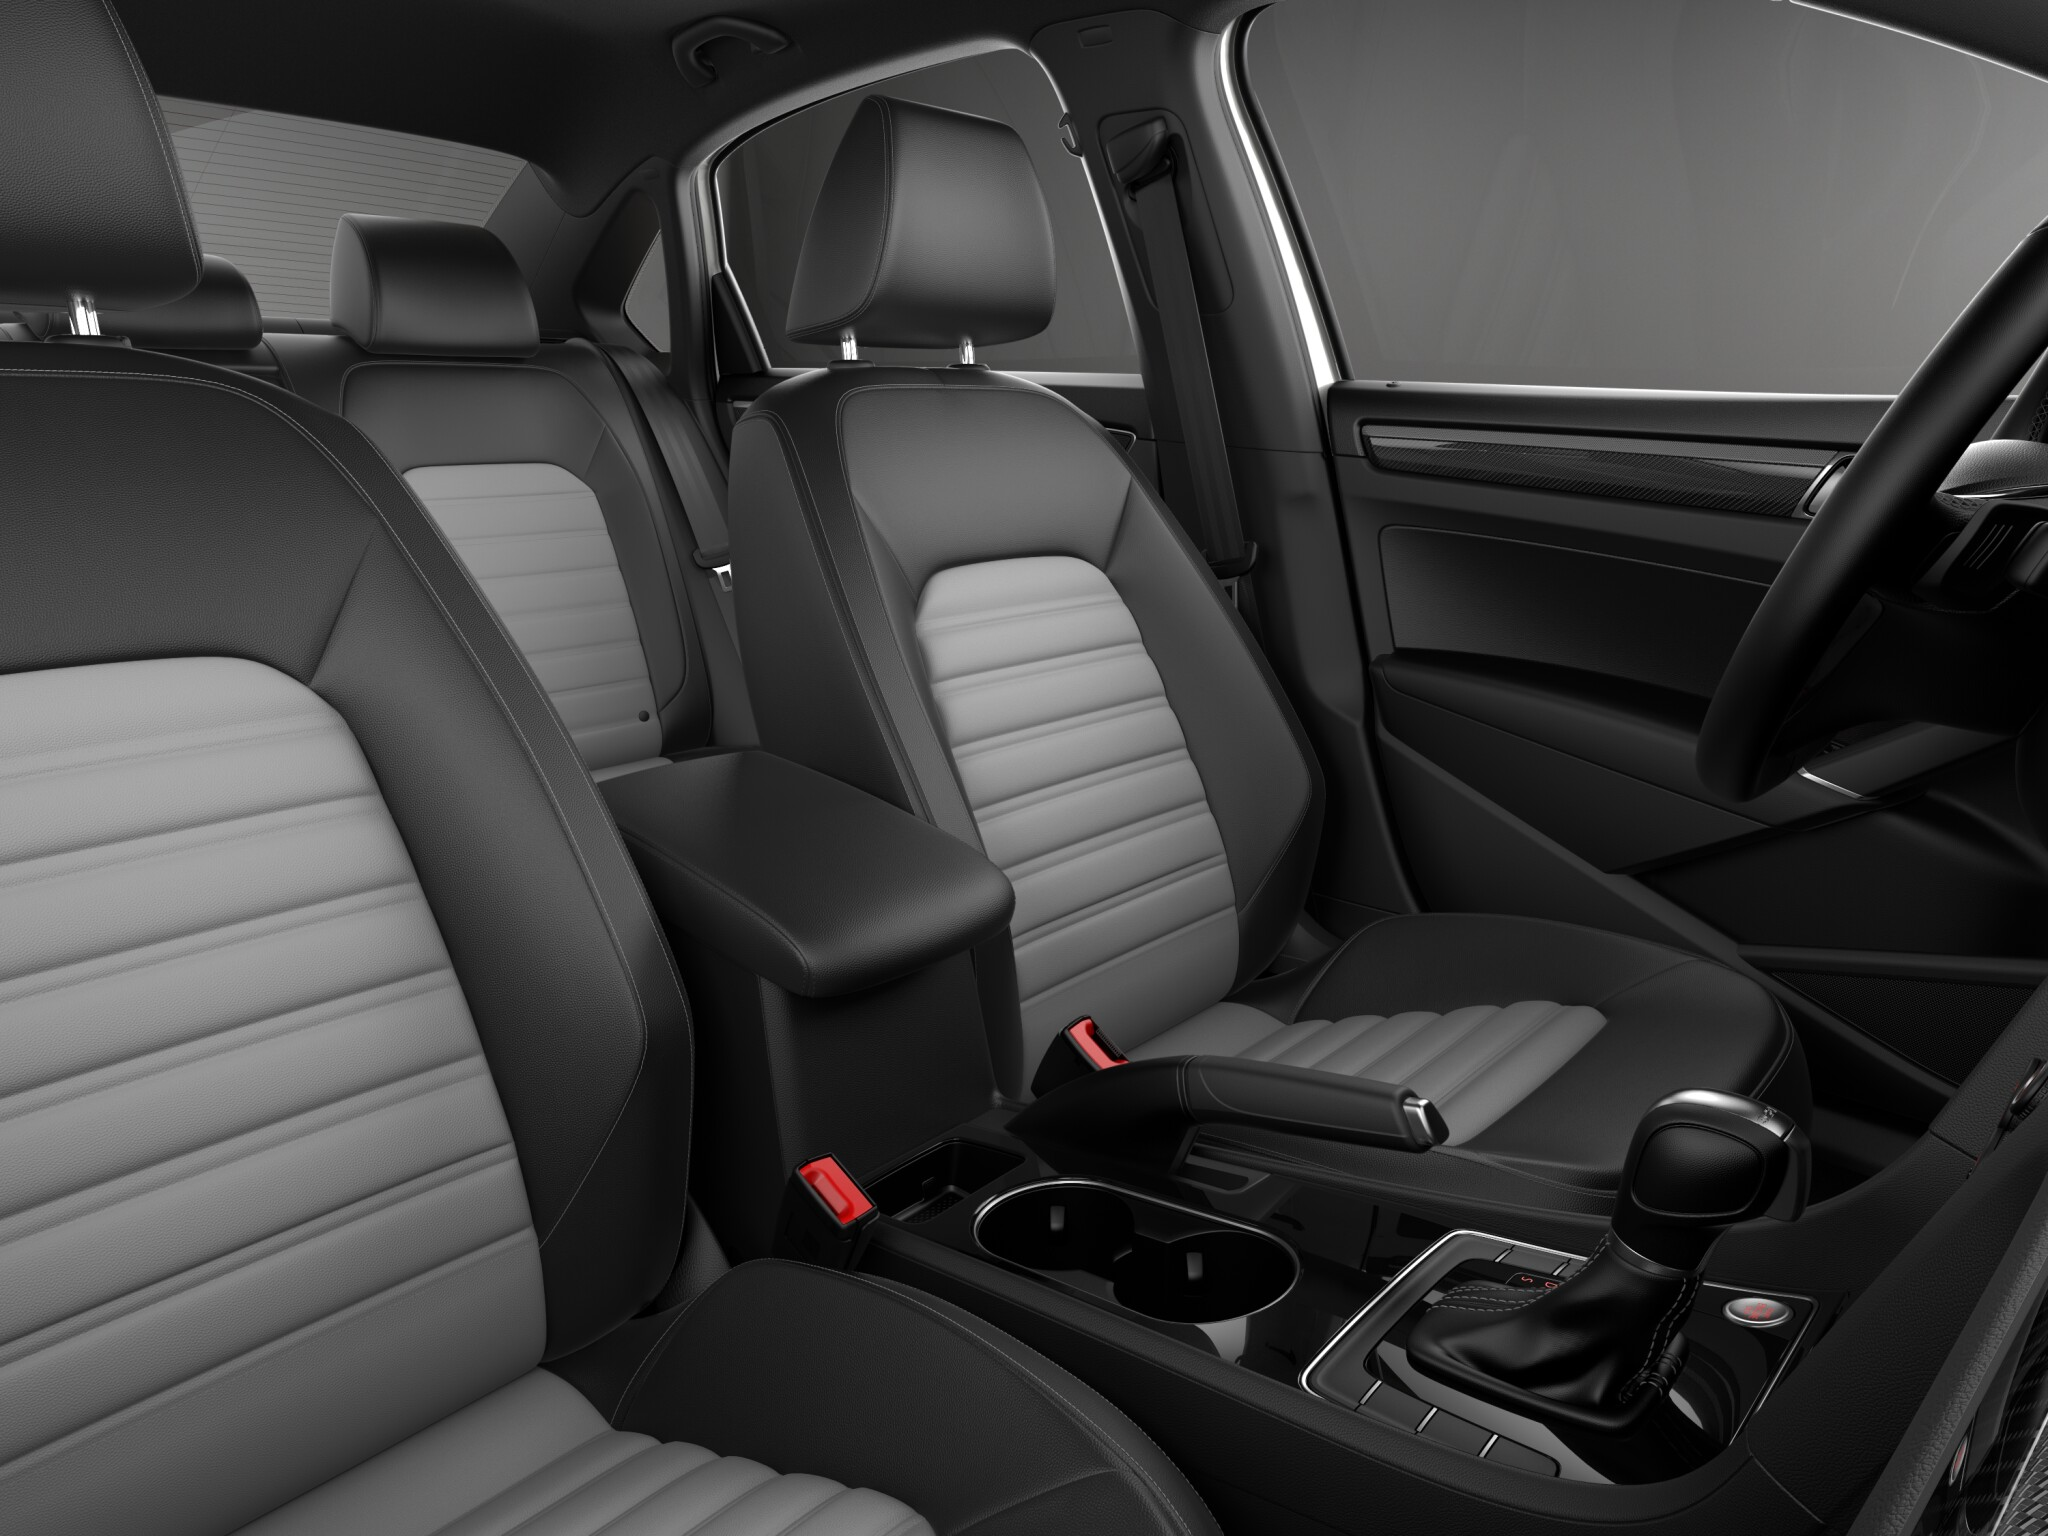 2018 Volkswagen Passat Interior Seating Picture